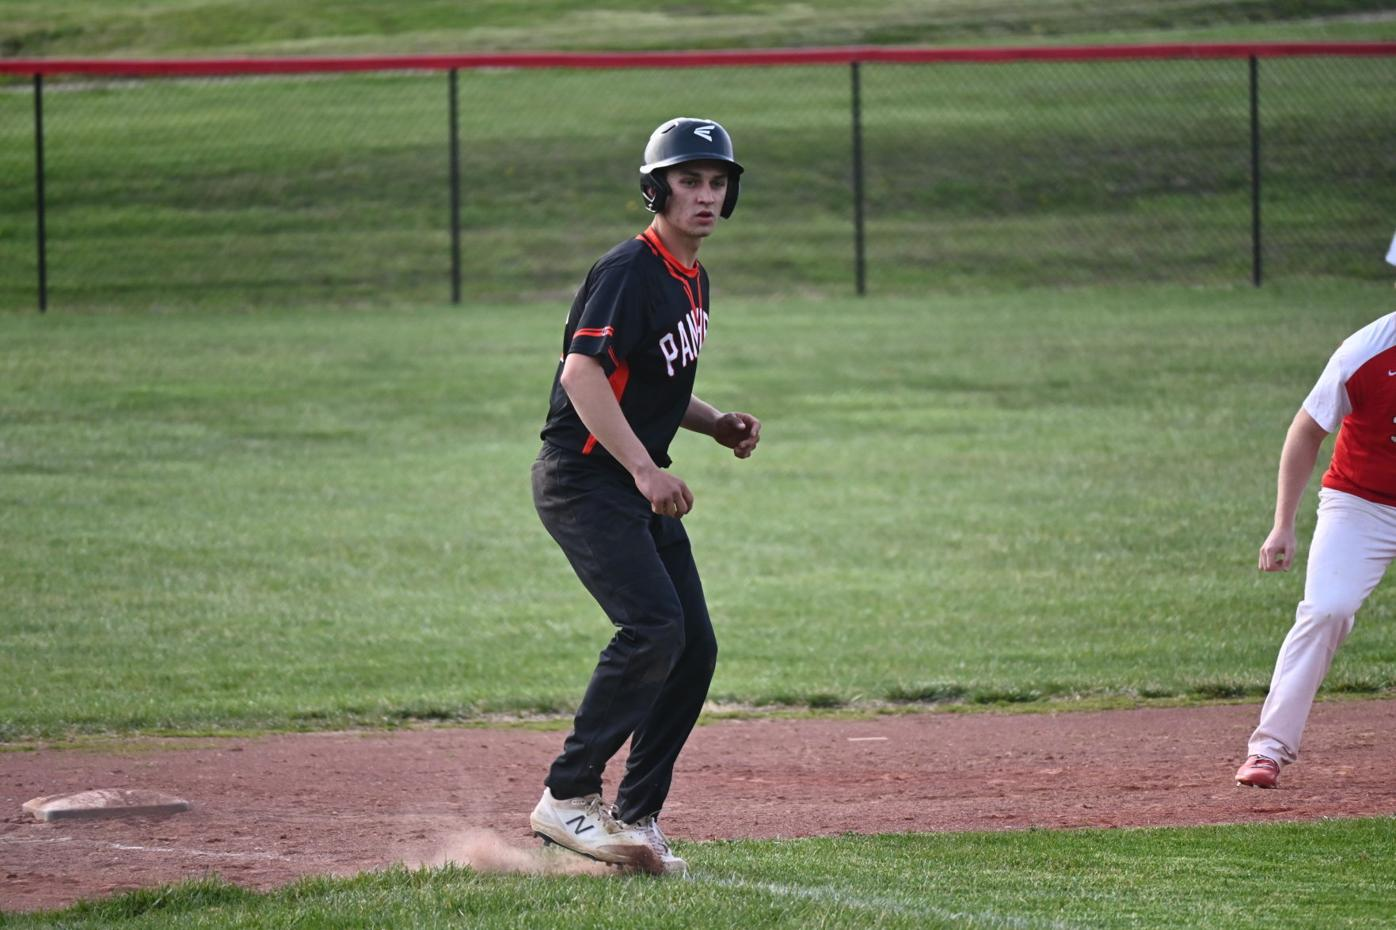 BASEBALL: Crooksville vs New Lex 04/06/21